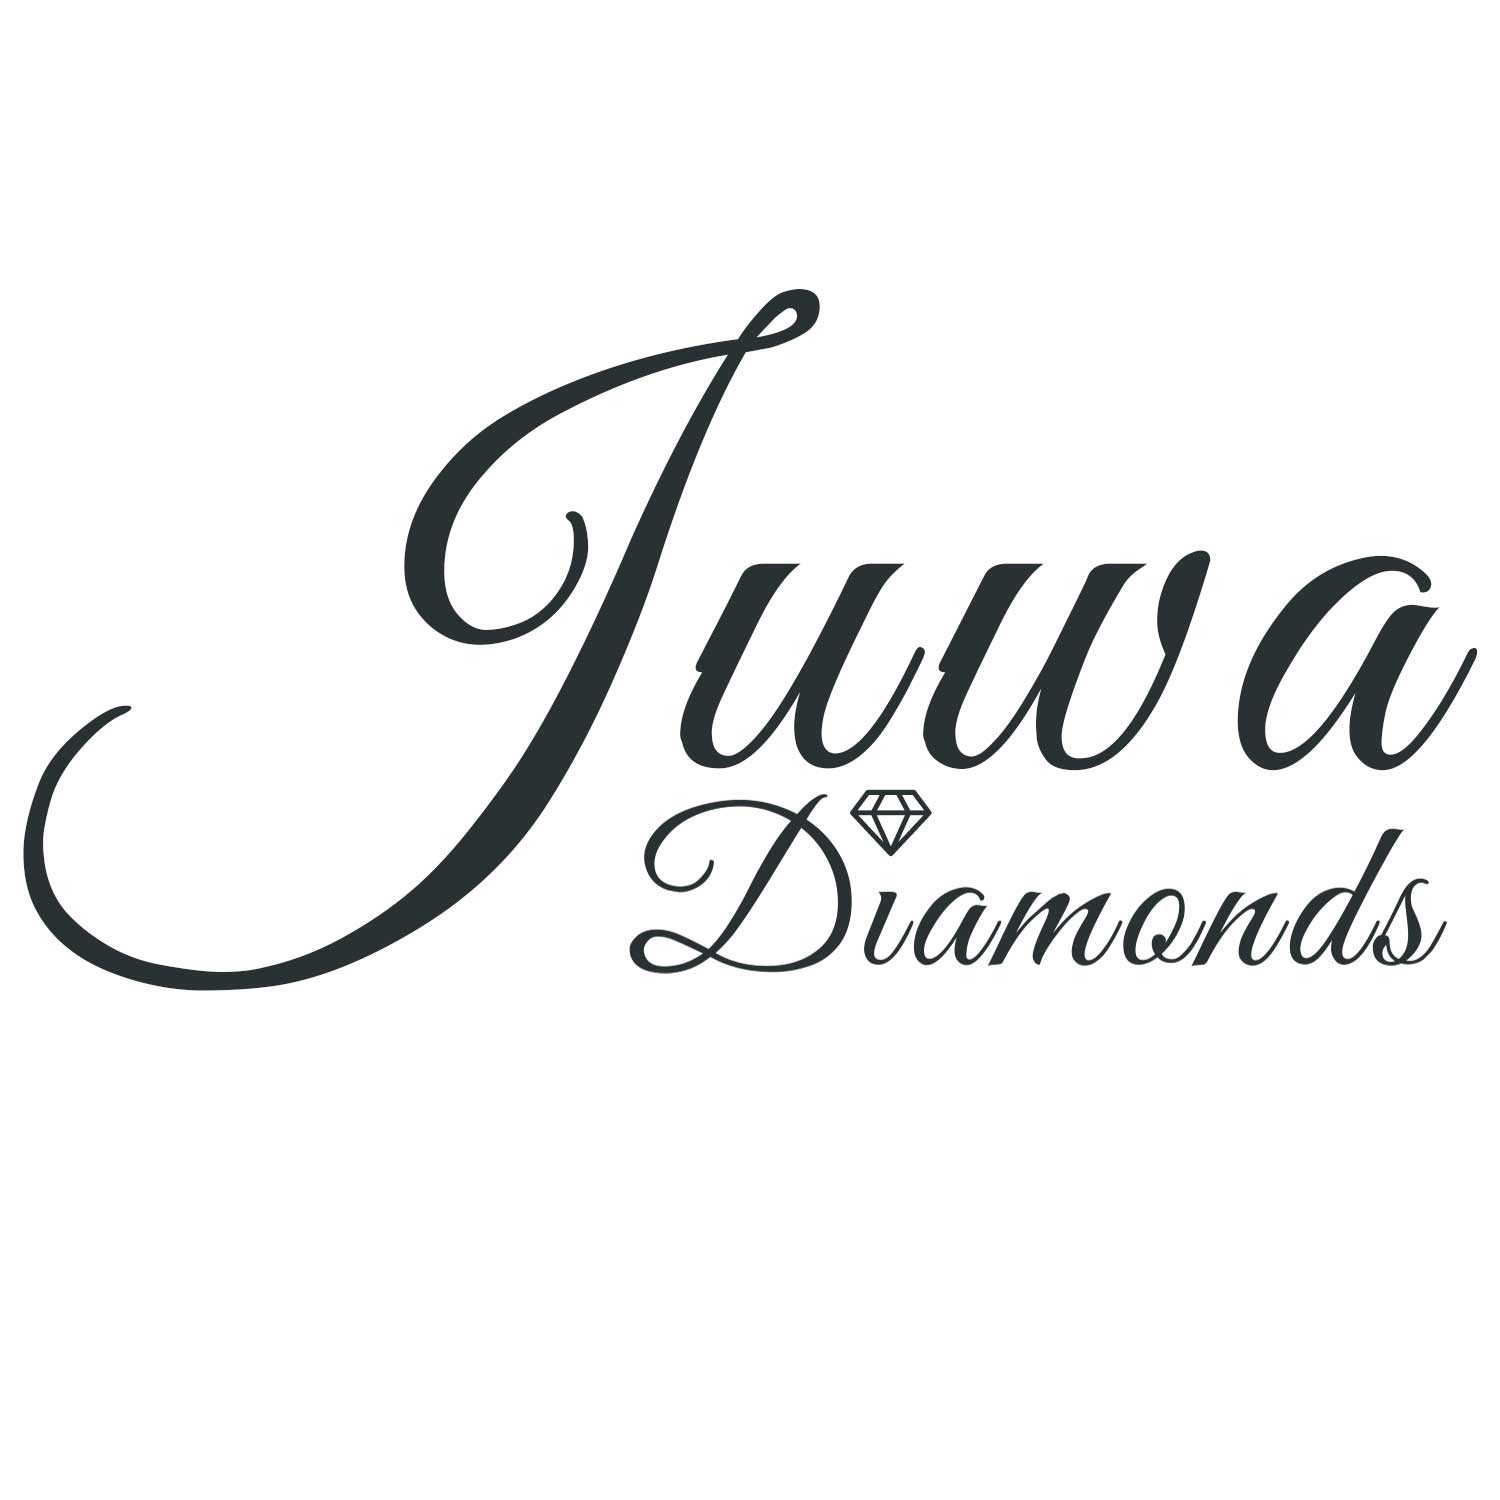 Juwa - Diamonds